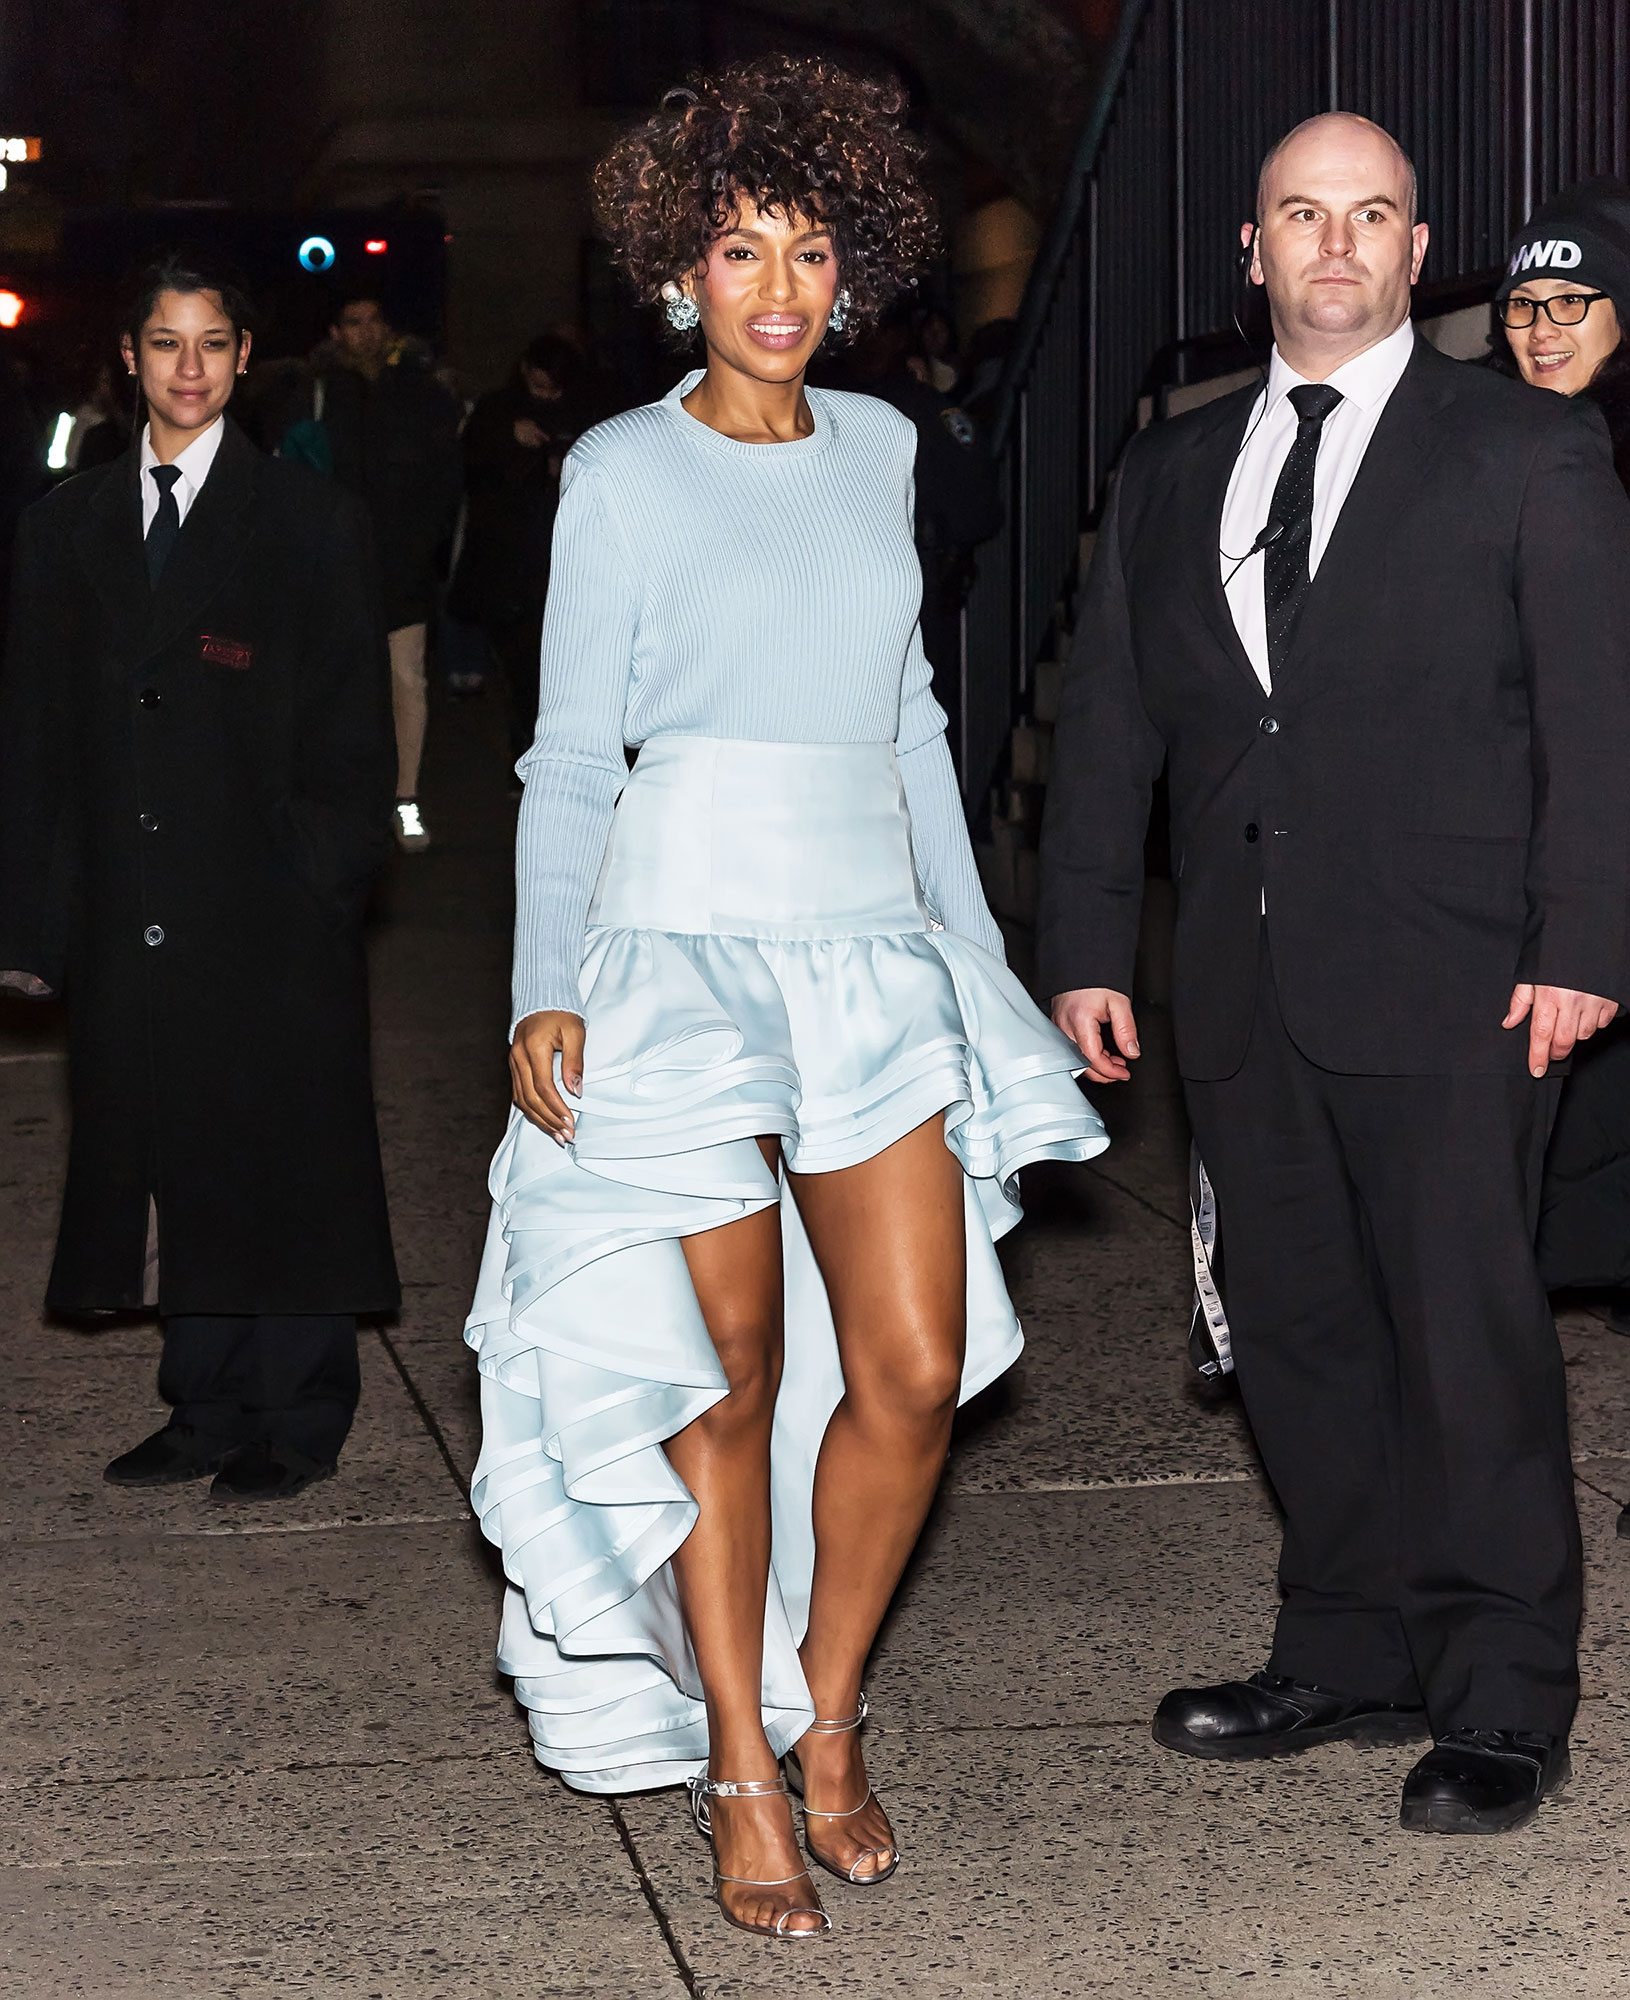 Kerry Washington nyfw new york fashion week - In her second outfit of the day, the actress attended the Marc Jacobs show on February 13 in a monochrome powder blue ensemble complete with a shiny high-low skirt and a slouchy sweater.